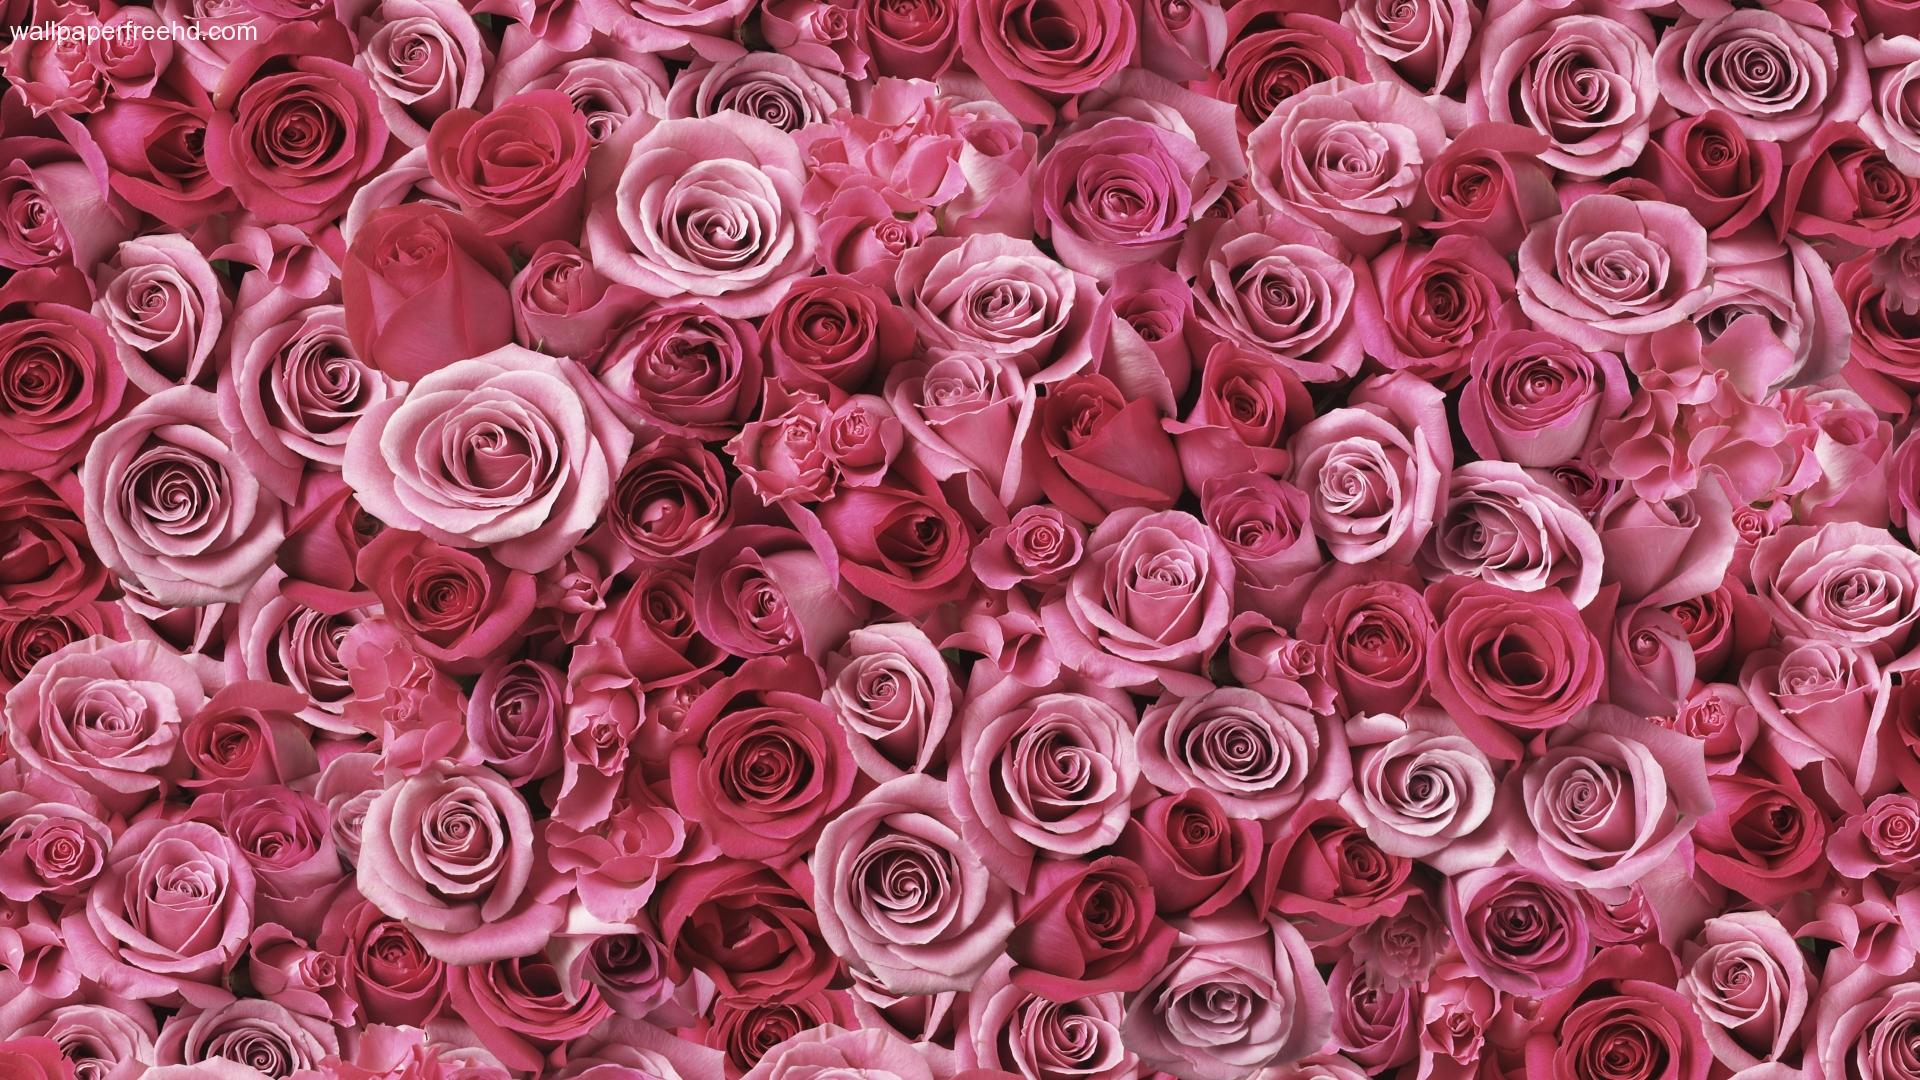 Backgrounds Roses Wallpapers Group (76+)